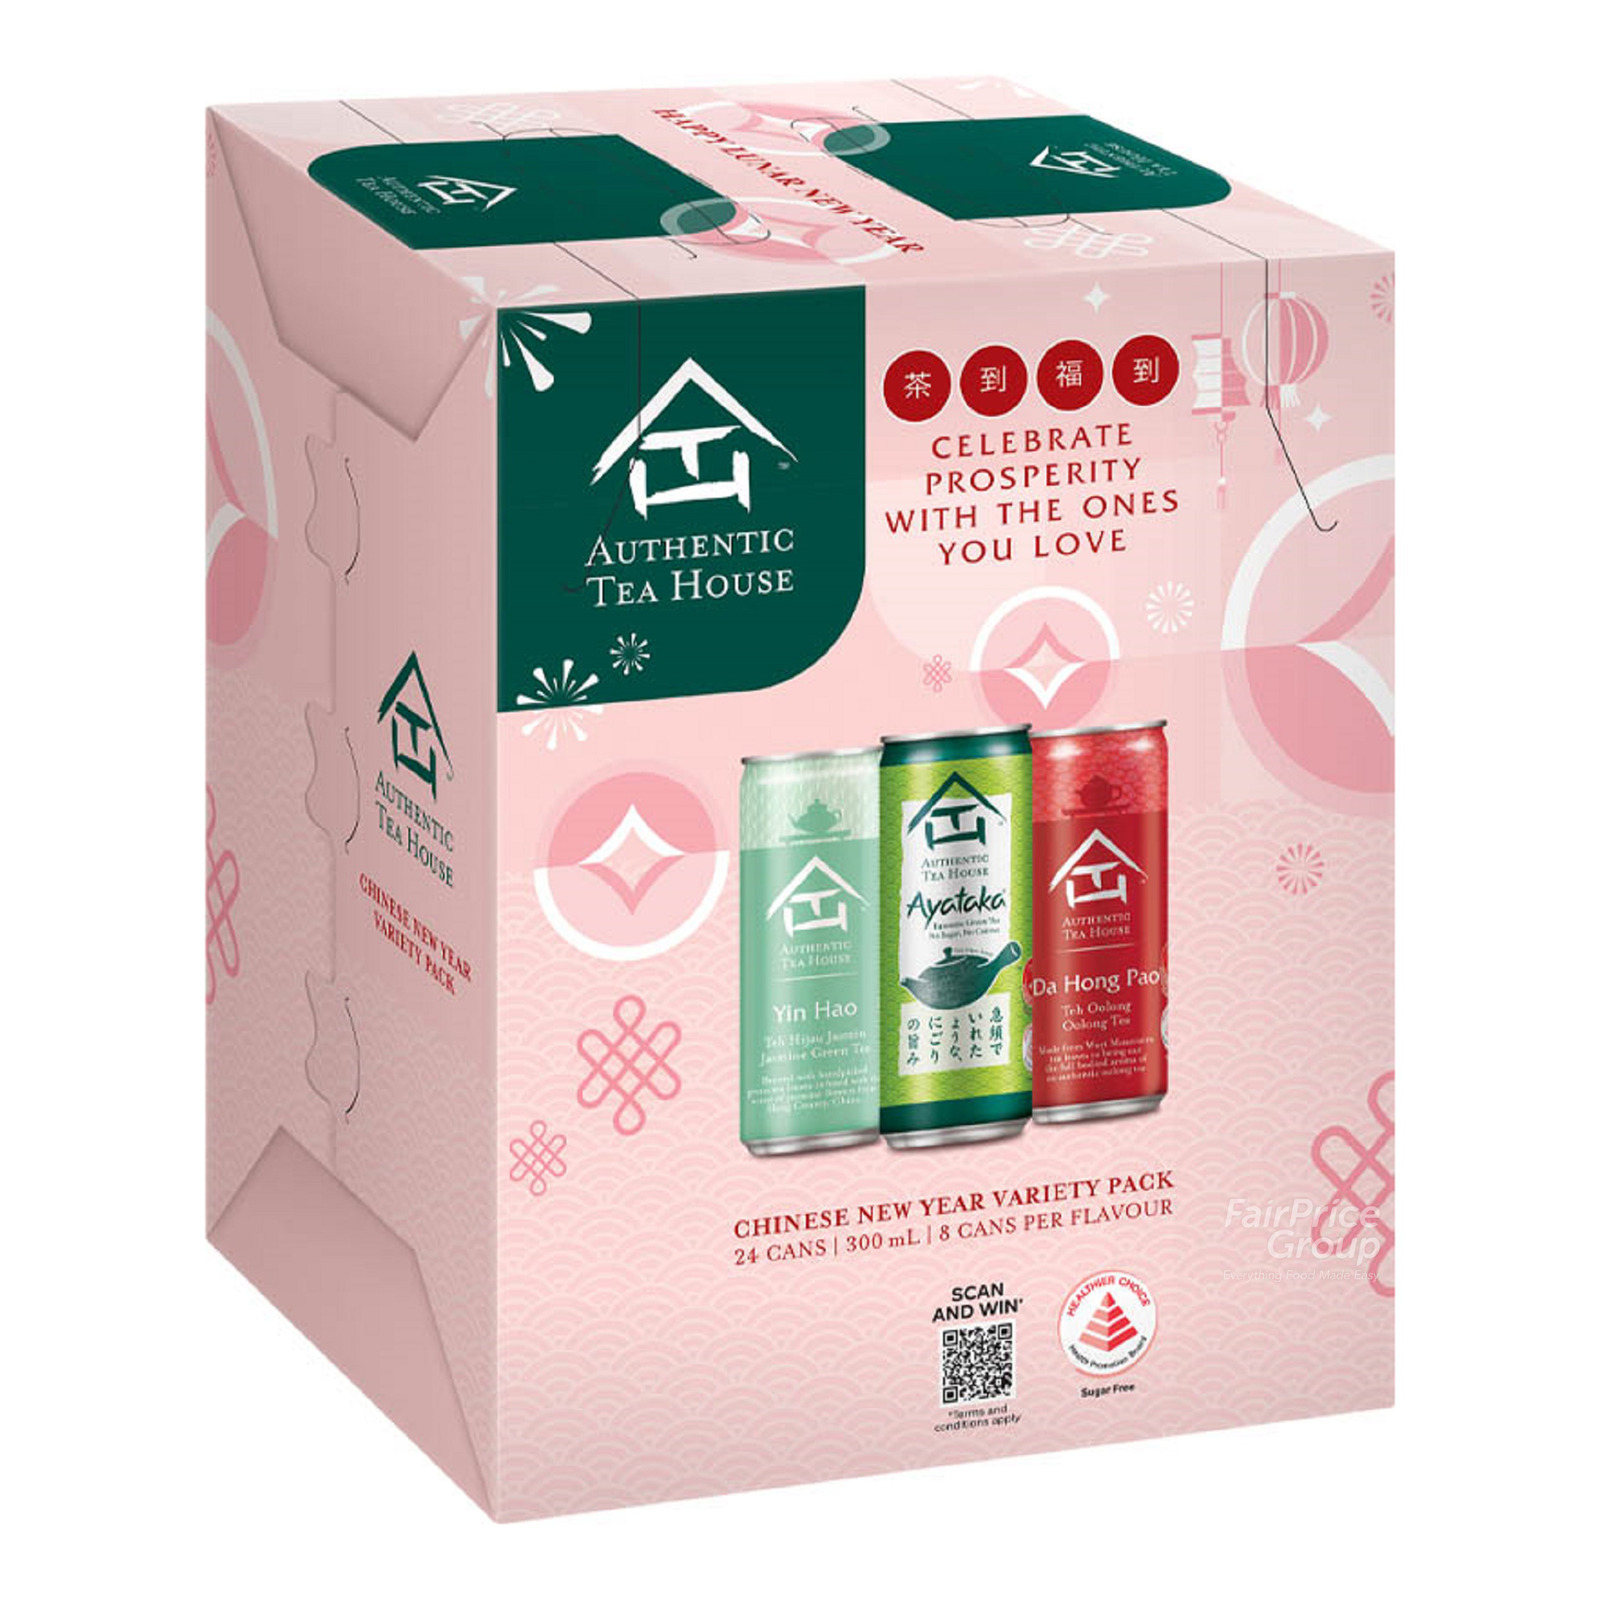 Authentic Tea House Can Drink - CNY Variety Pack